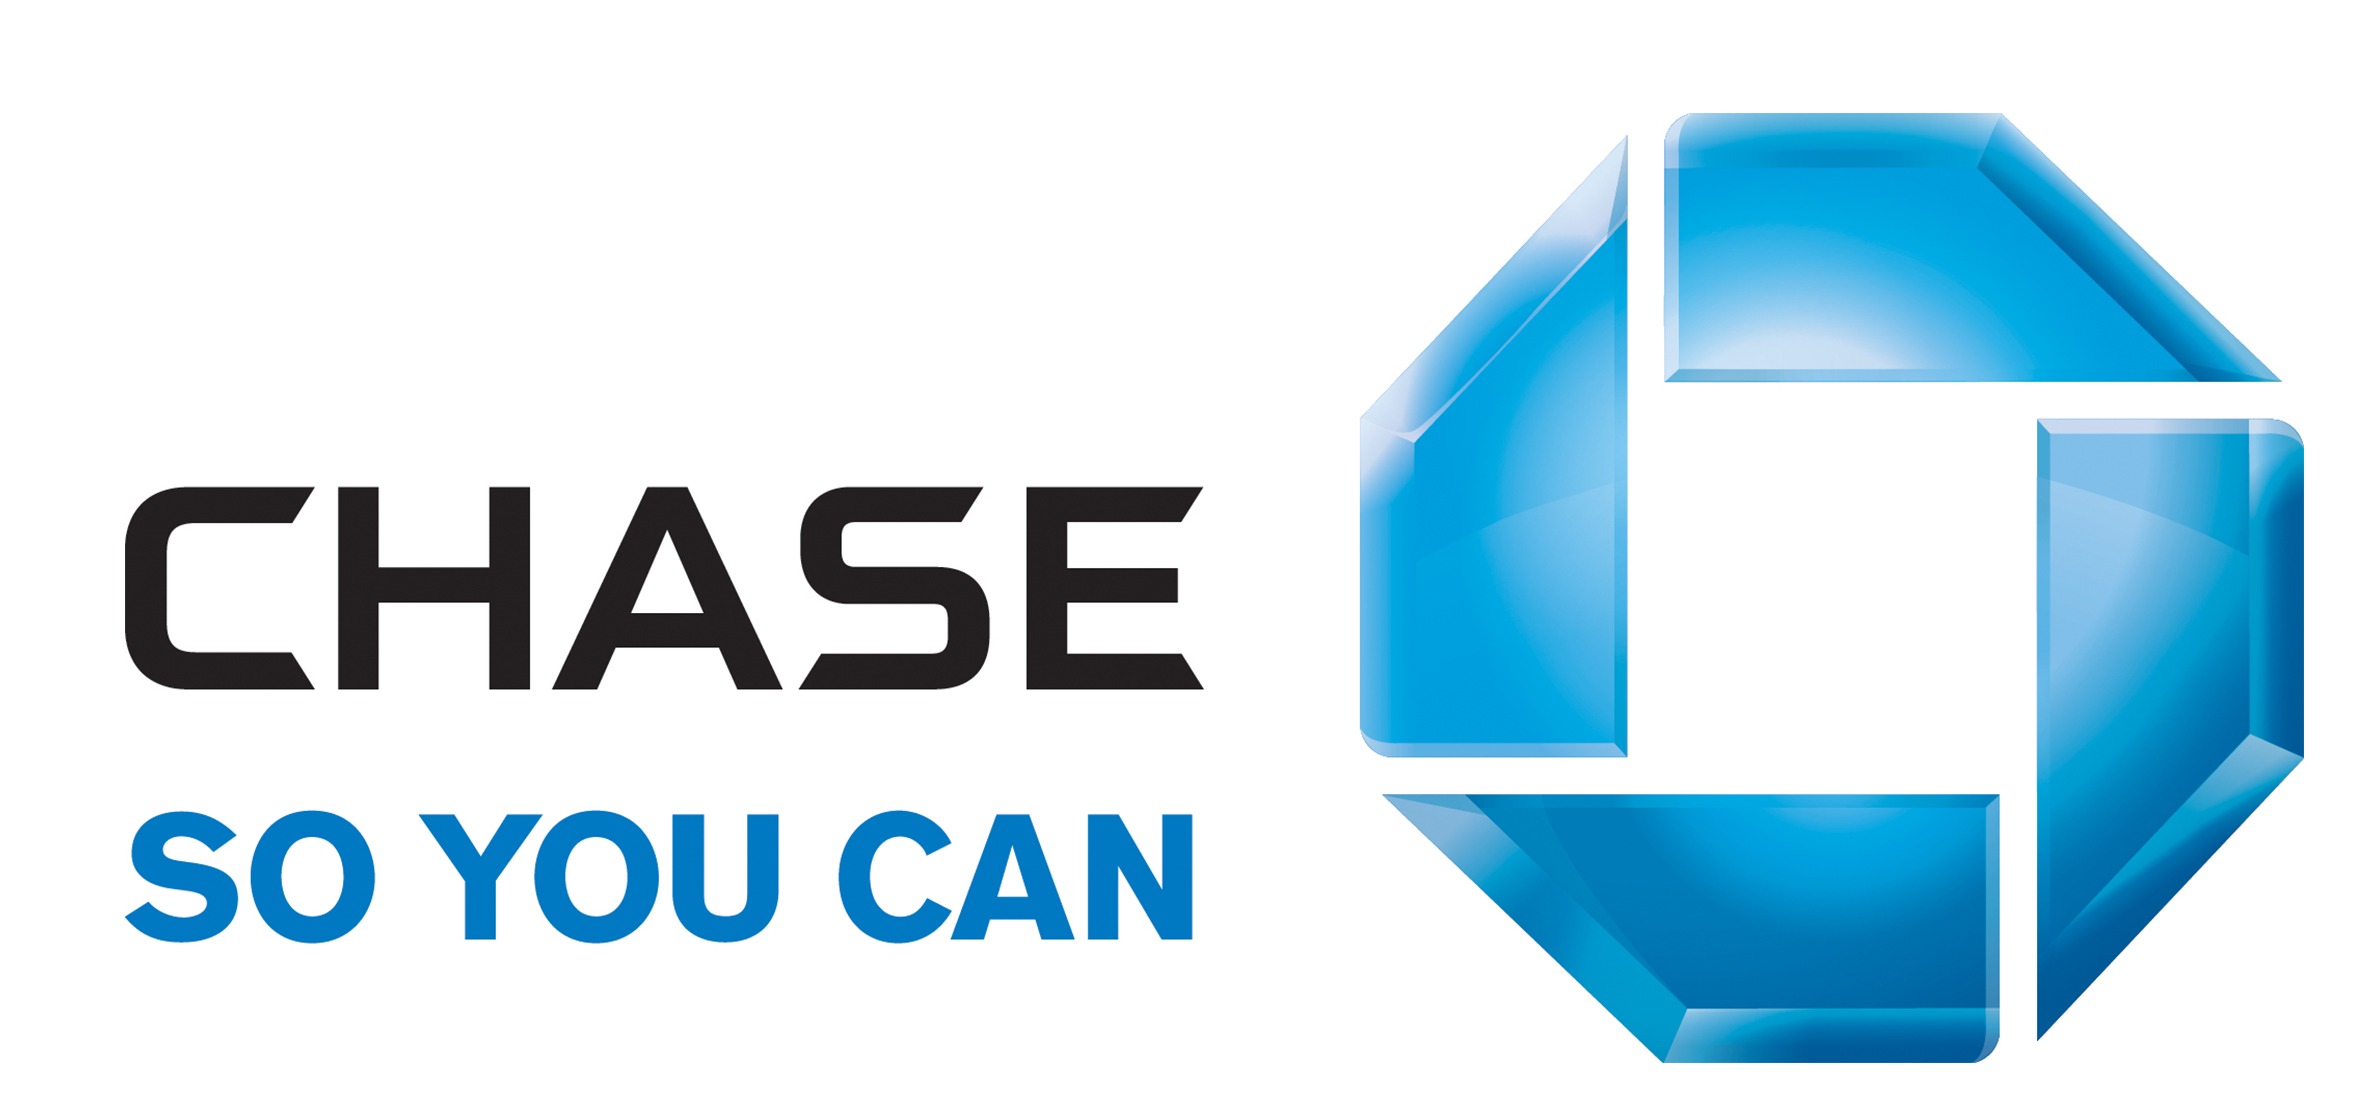 Chase to Award $3 Million to Small Businesses Through